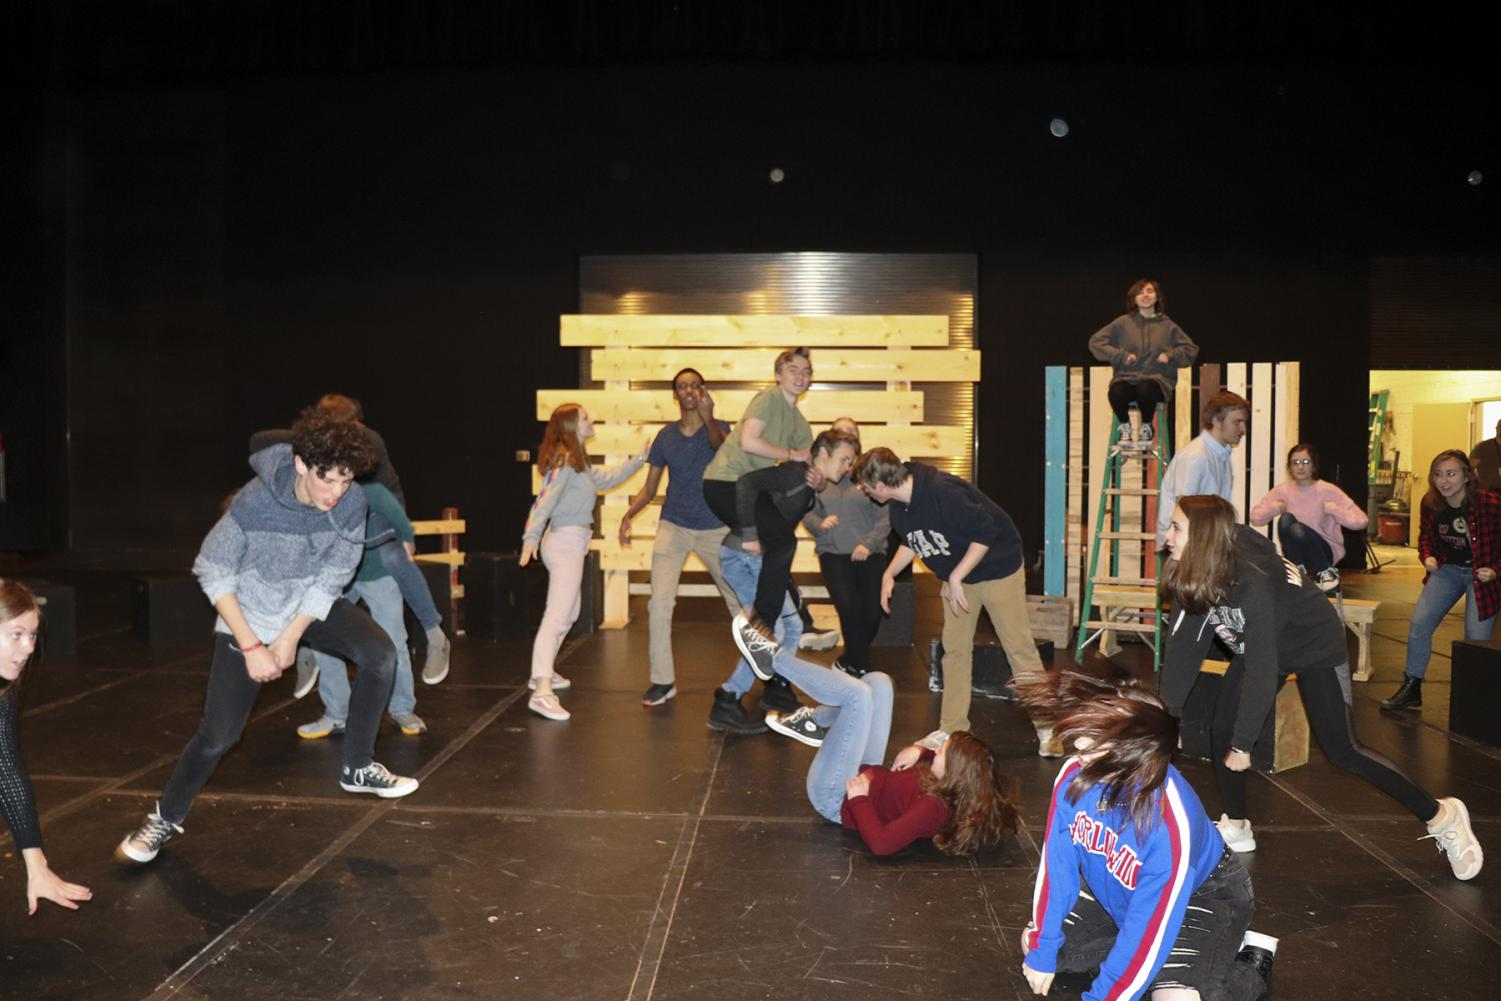 One+Act+cast+practice+for+%22Animal+Farm%22.+Cast+practice+on+a+set+that+is+easily+movable+due+to+the+fast+paced+show.+